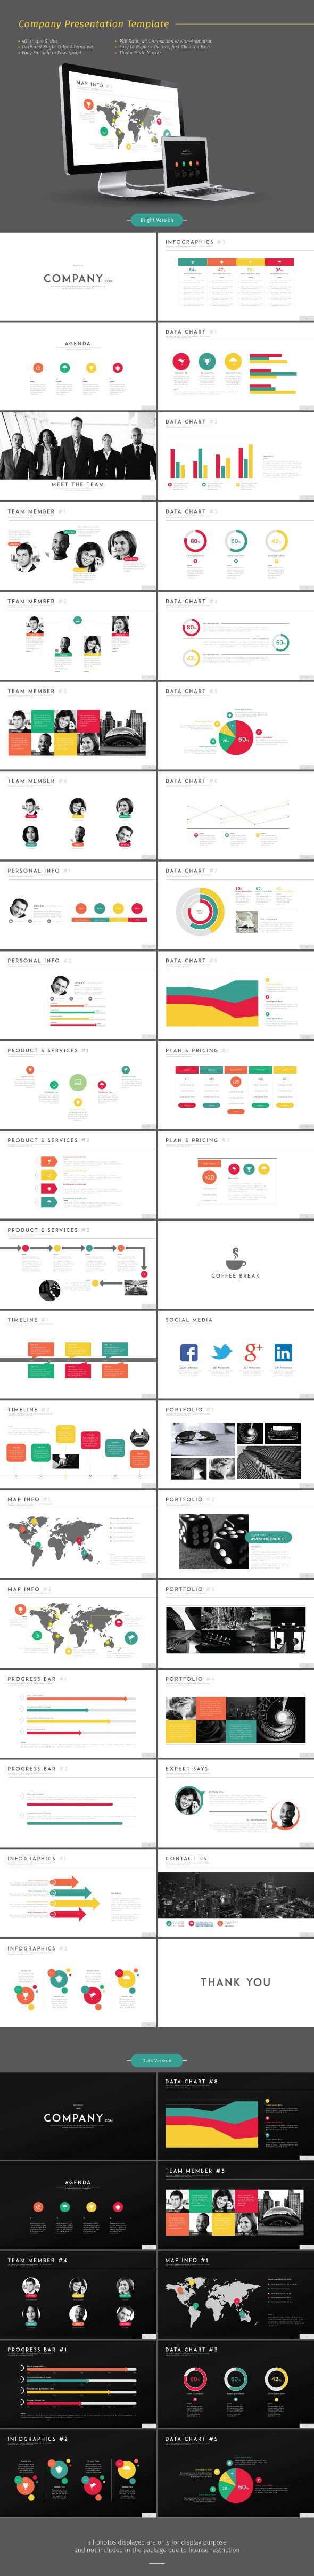 Company Presentation PowerPoint Template #powerpoint #powerpointtemplate #presentation Download: http://graphicriver.net/item/company-presentation-template/8916659?ref=ksioks